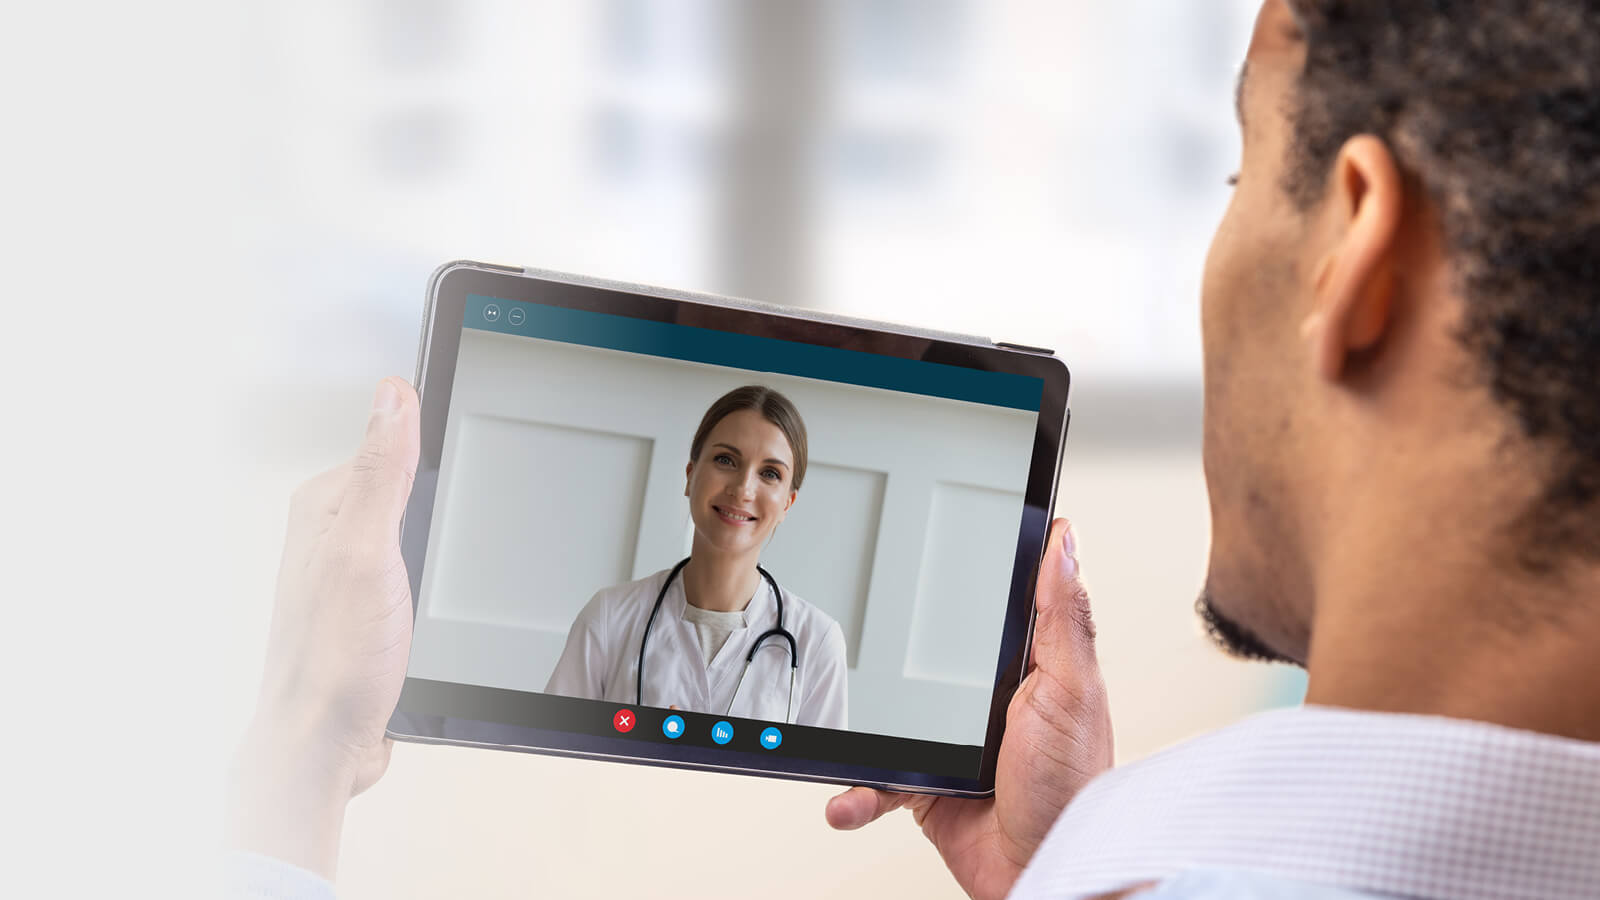 Image of a patient and doctor having an online consultation on a tablet.